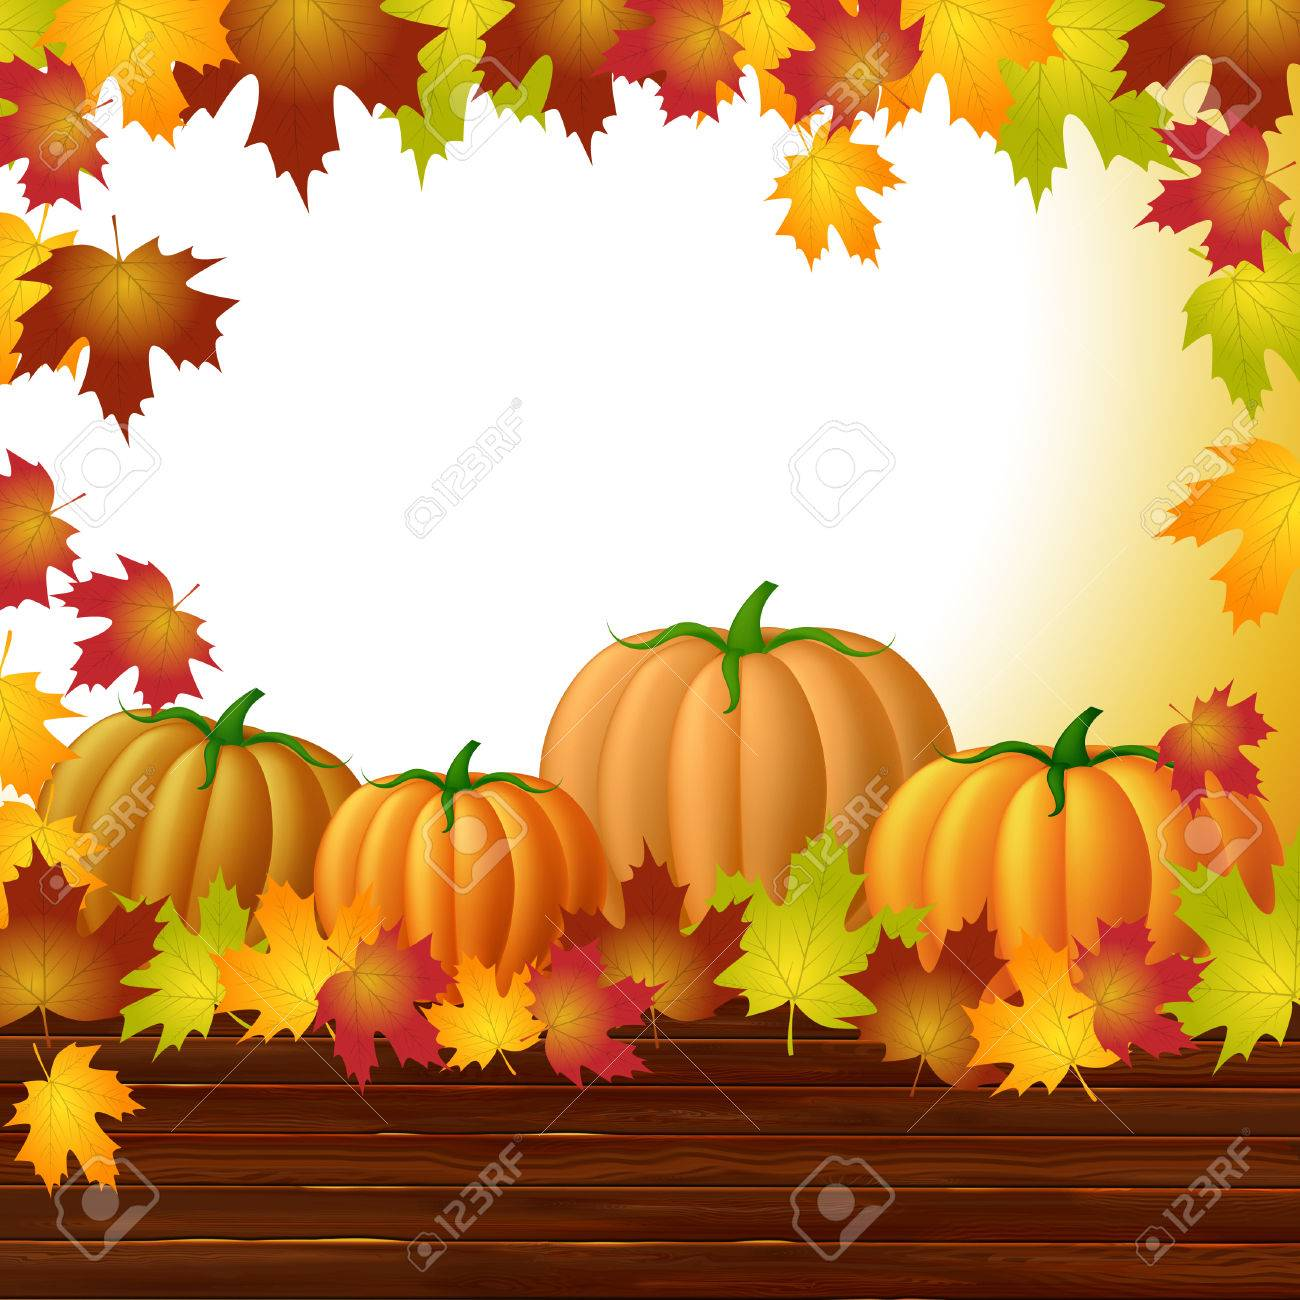 Pumpkin Copyspace Meaning Trick Or Treat And Happy Halloween Stock ...